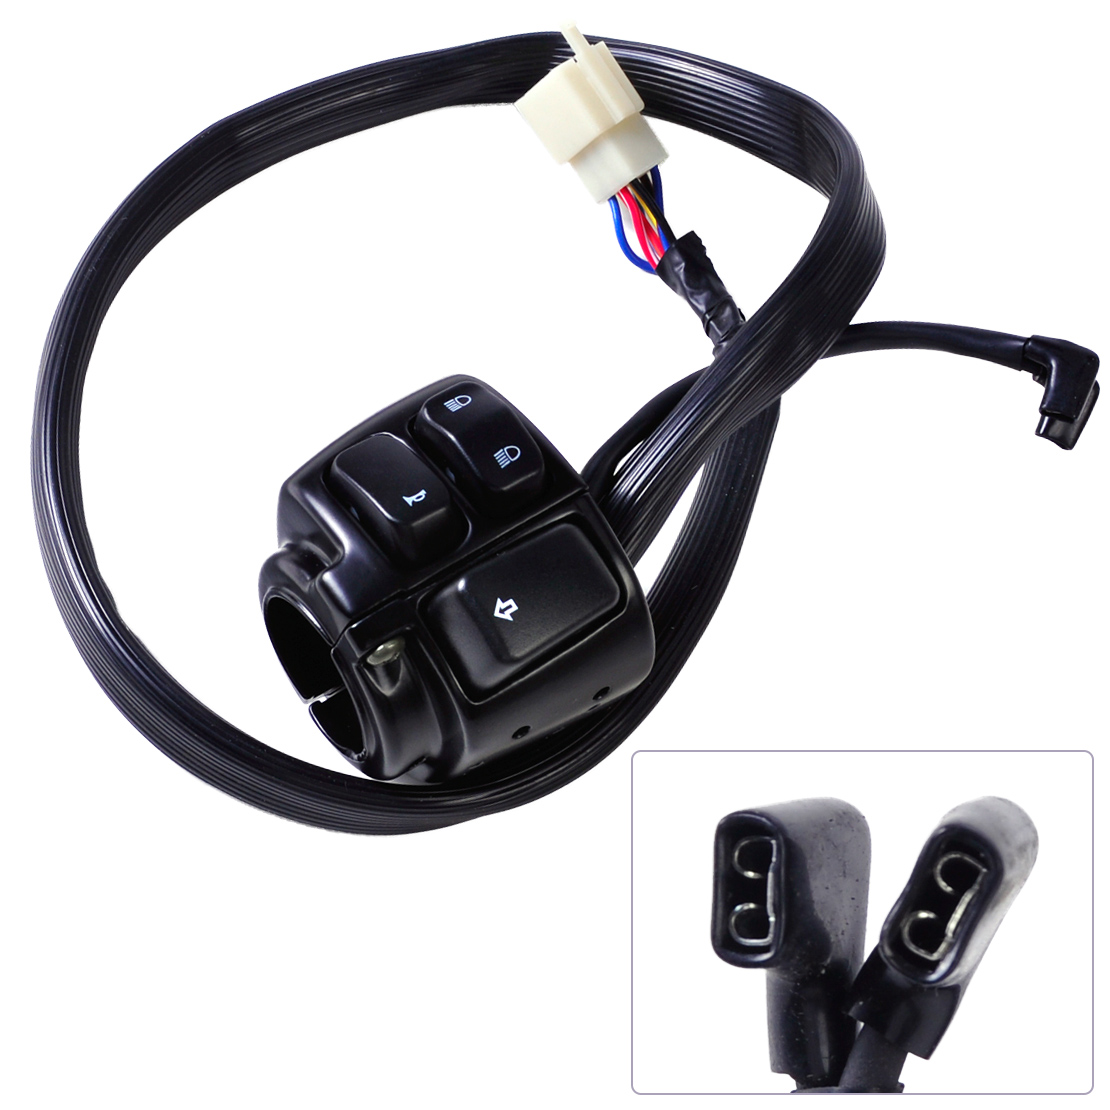 medium resolution of dwcx motorcycle 1 handlebar horn hi lo beam left turn signals switch wire harness for harley davidson softail sportster 1200 in motorcycle switches from